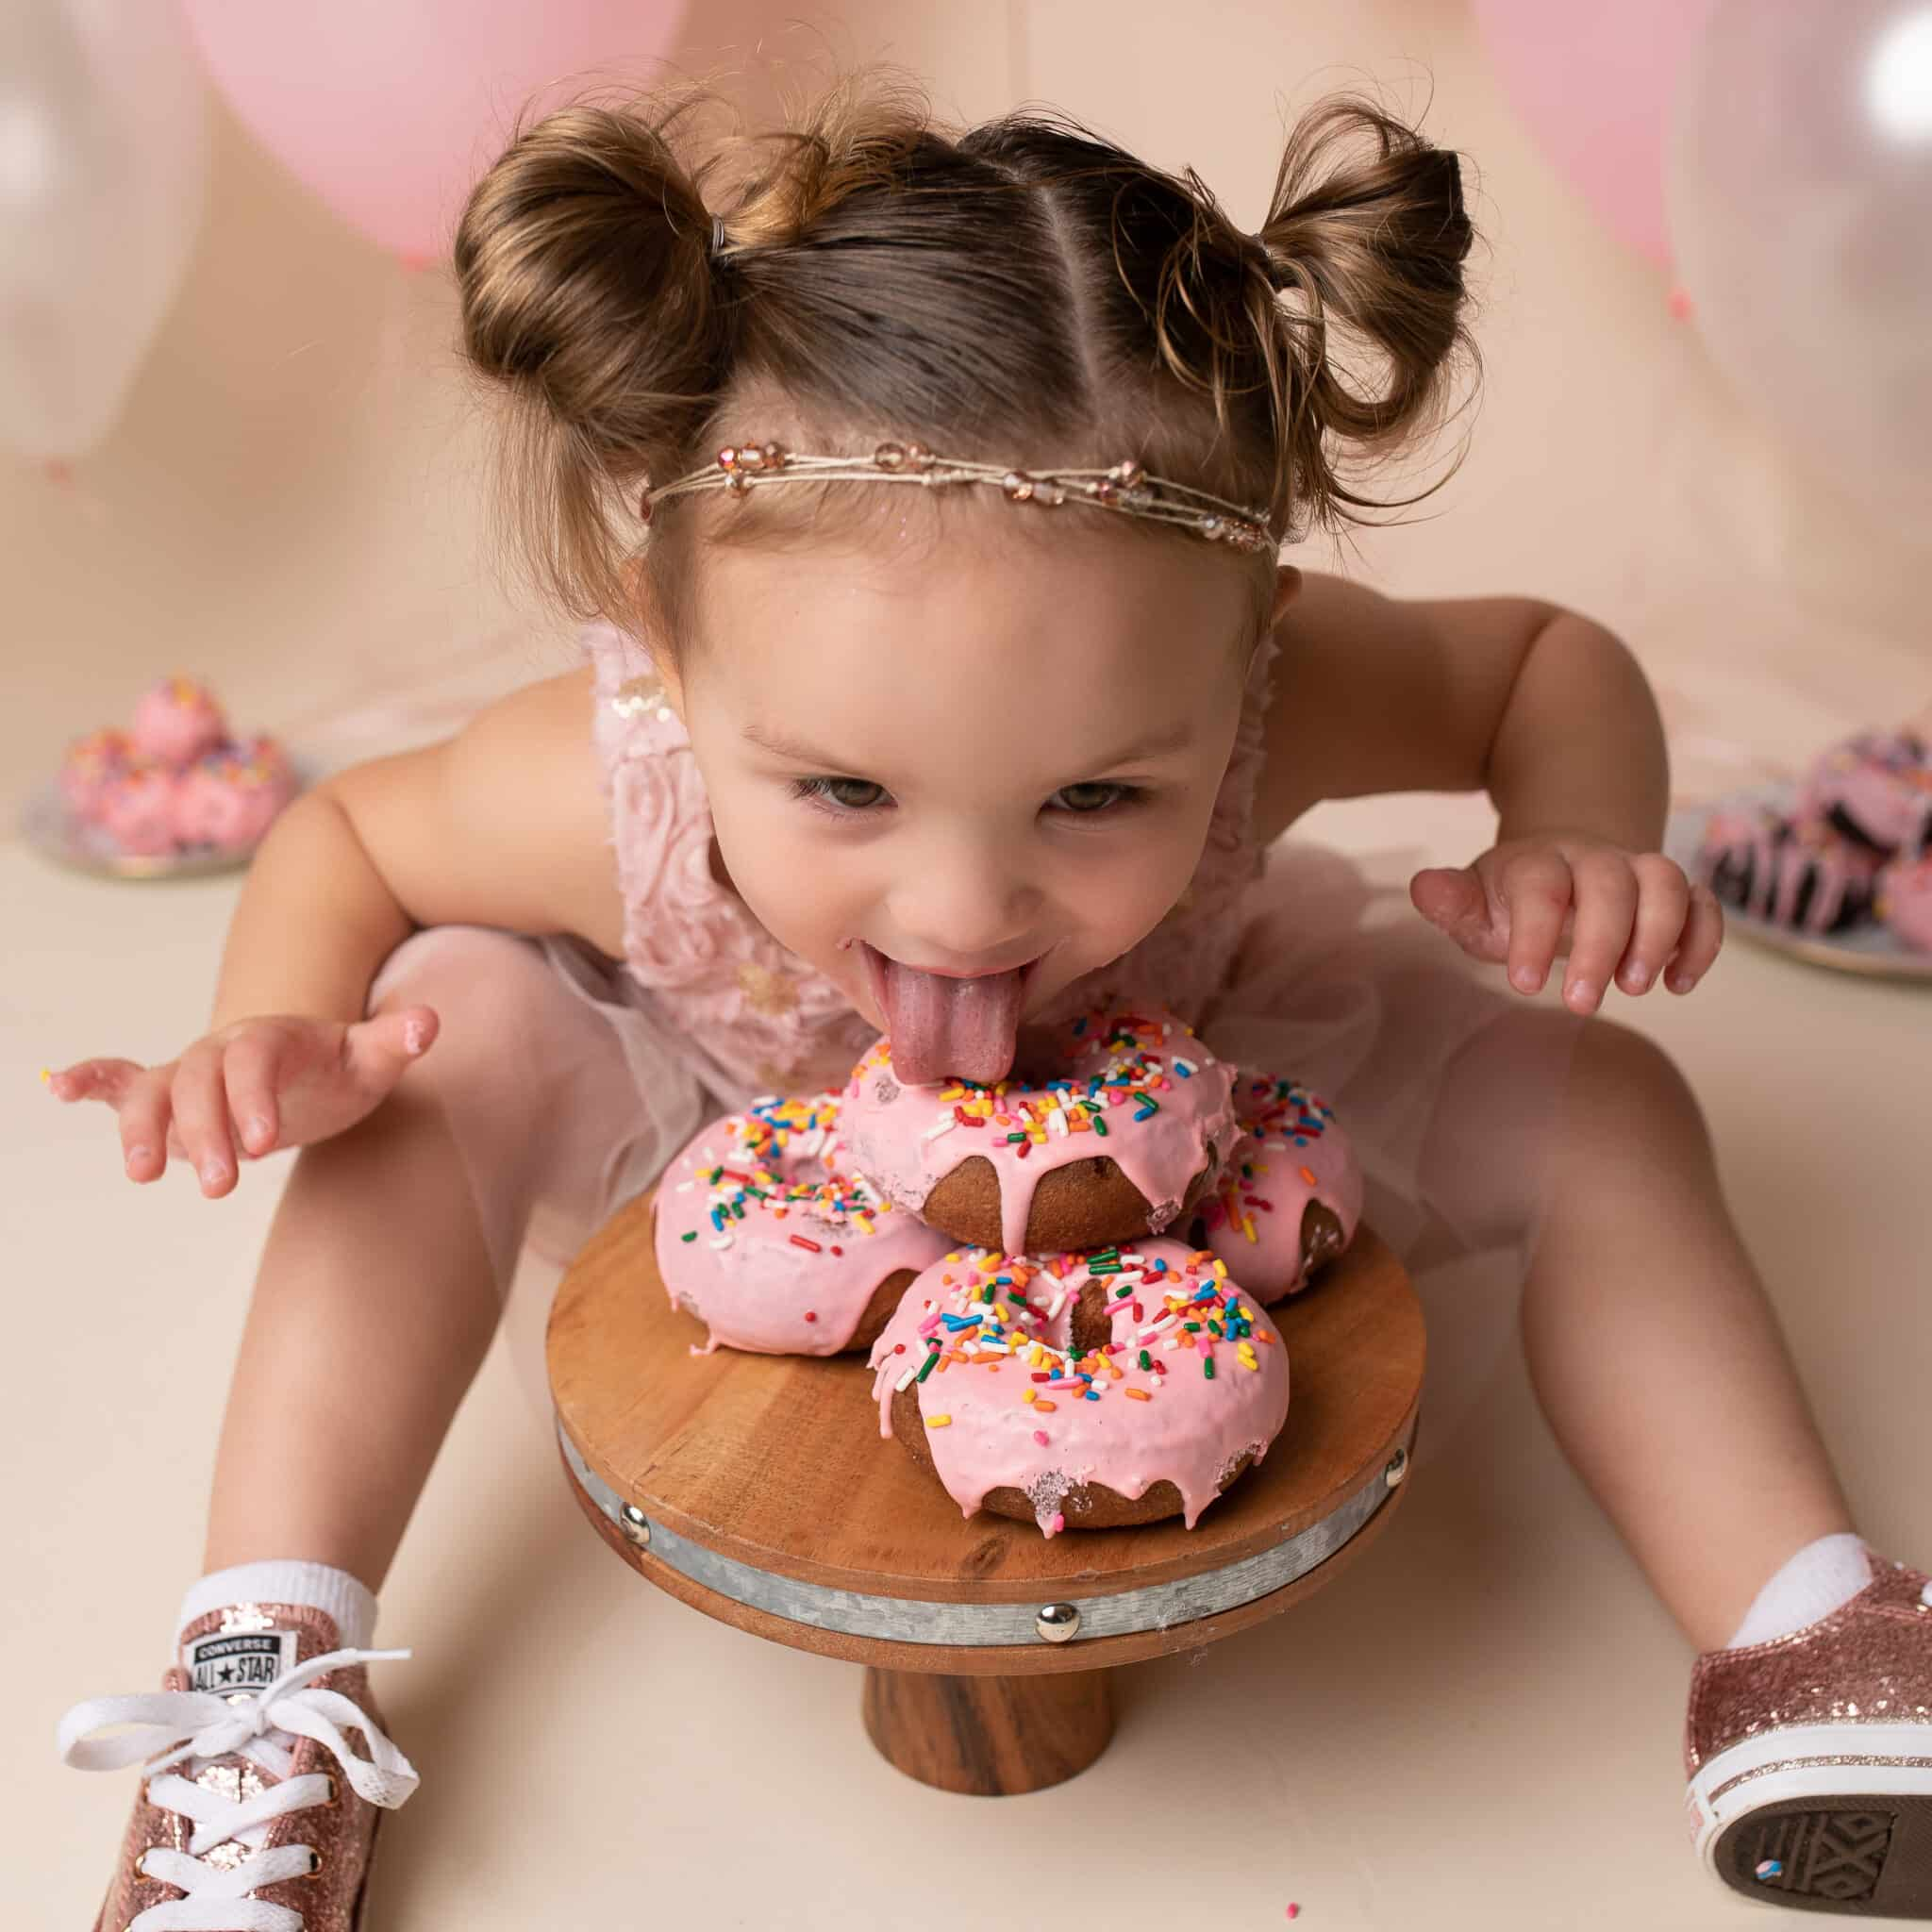 Baby Girl in Pink Dress eating Pink Sprinkled Donuts